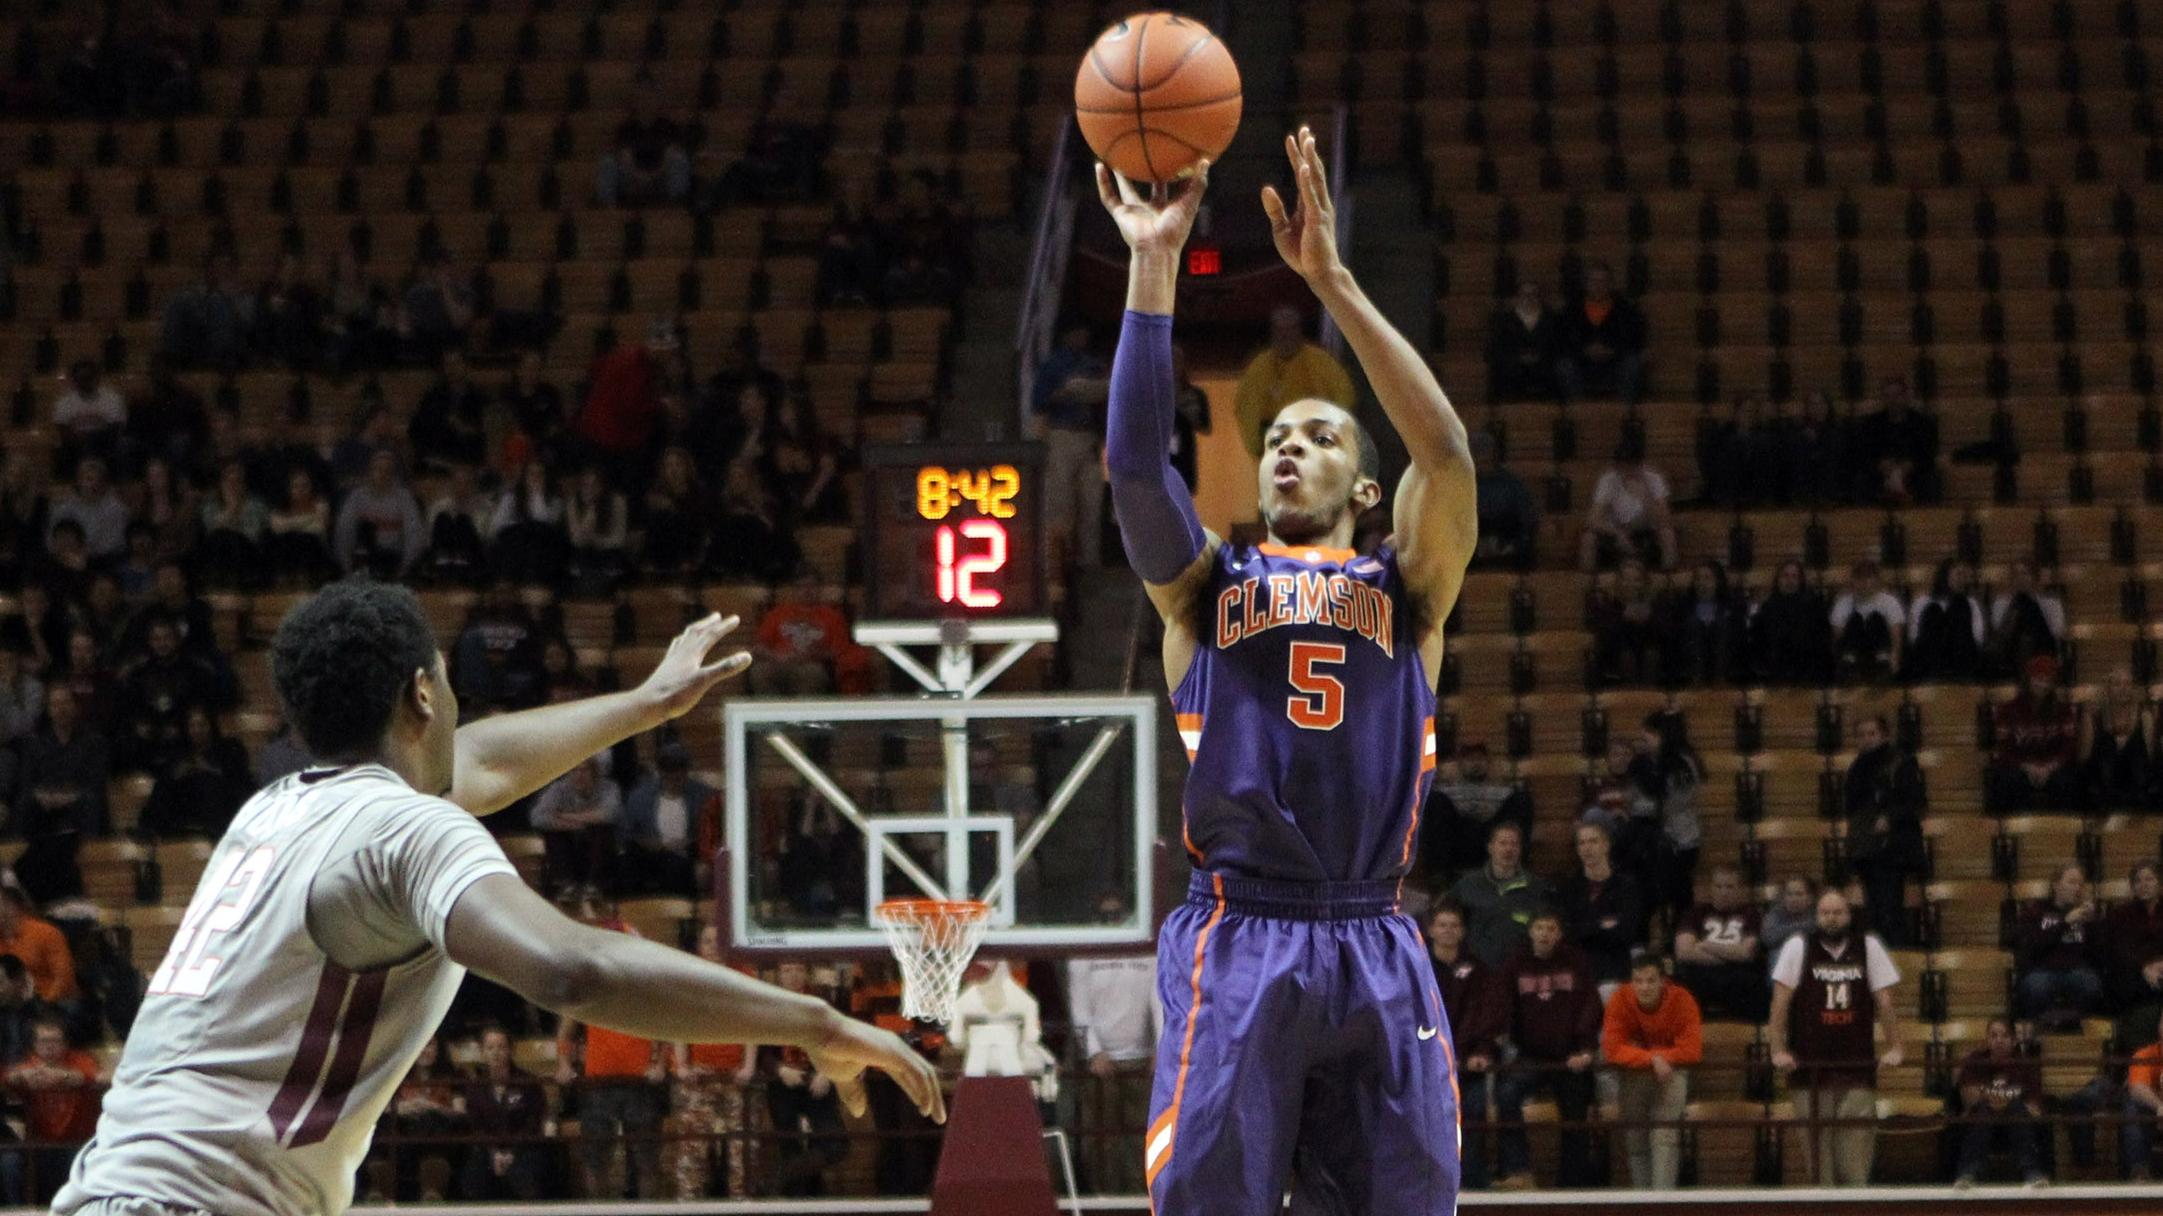 Tigers Travel to Tallahassee to Face Florida State Saturday